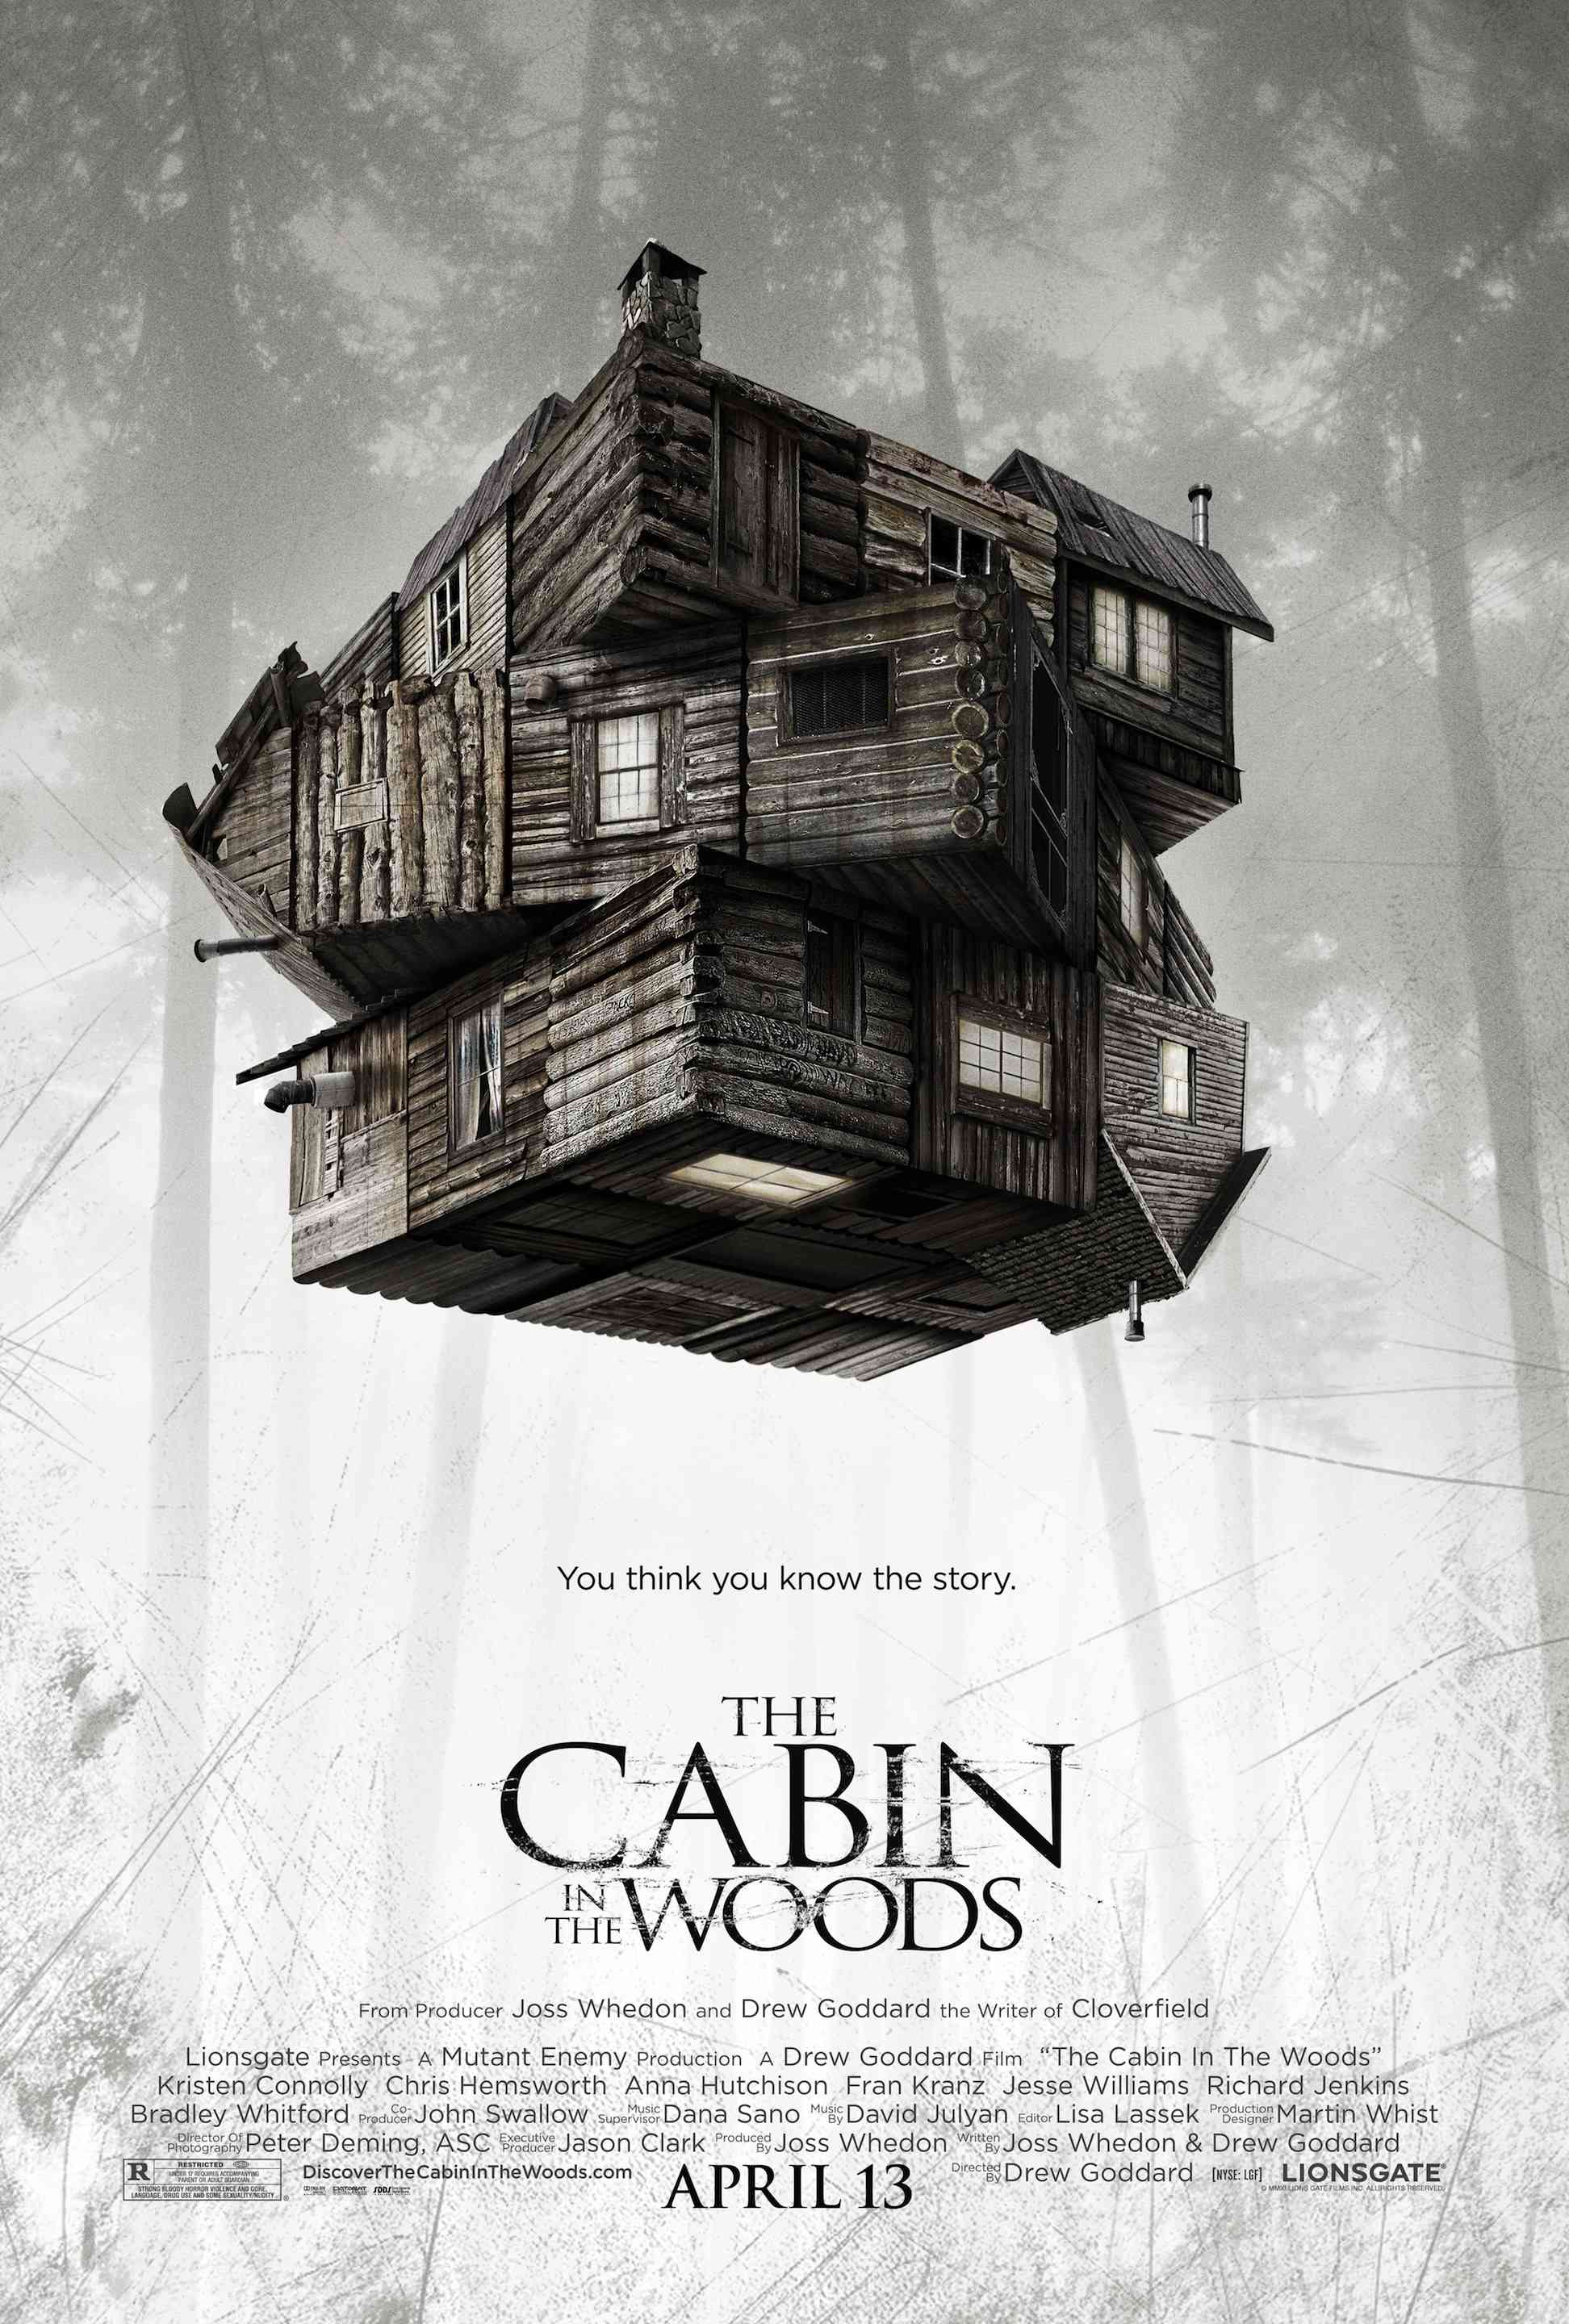 cabin-in-the-woods-movie-teaser-poster-012